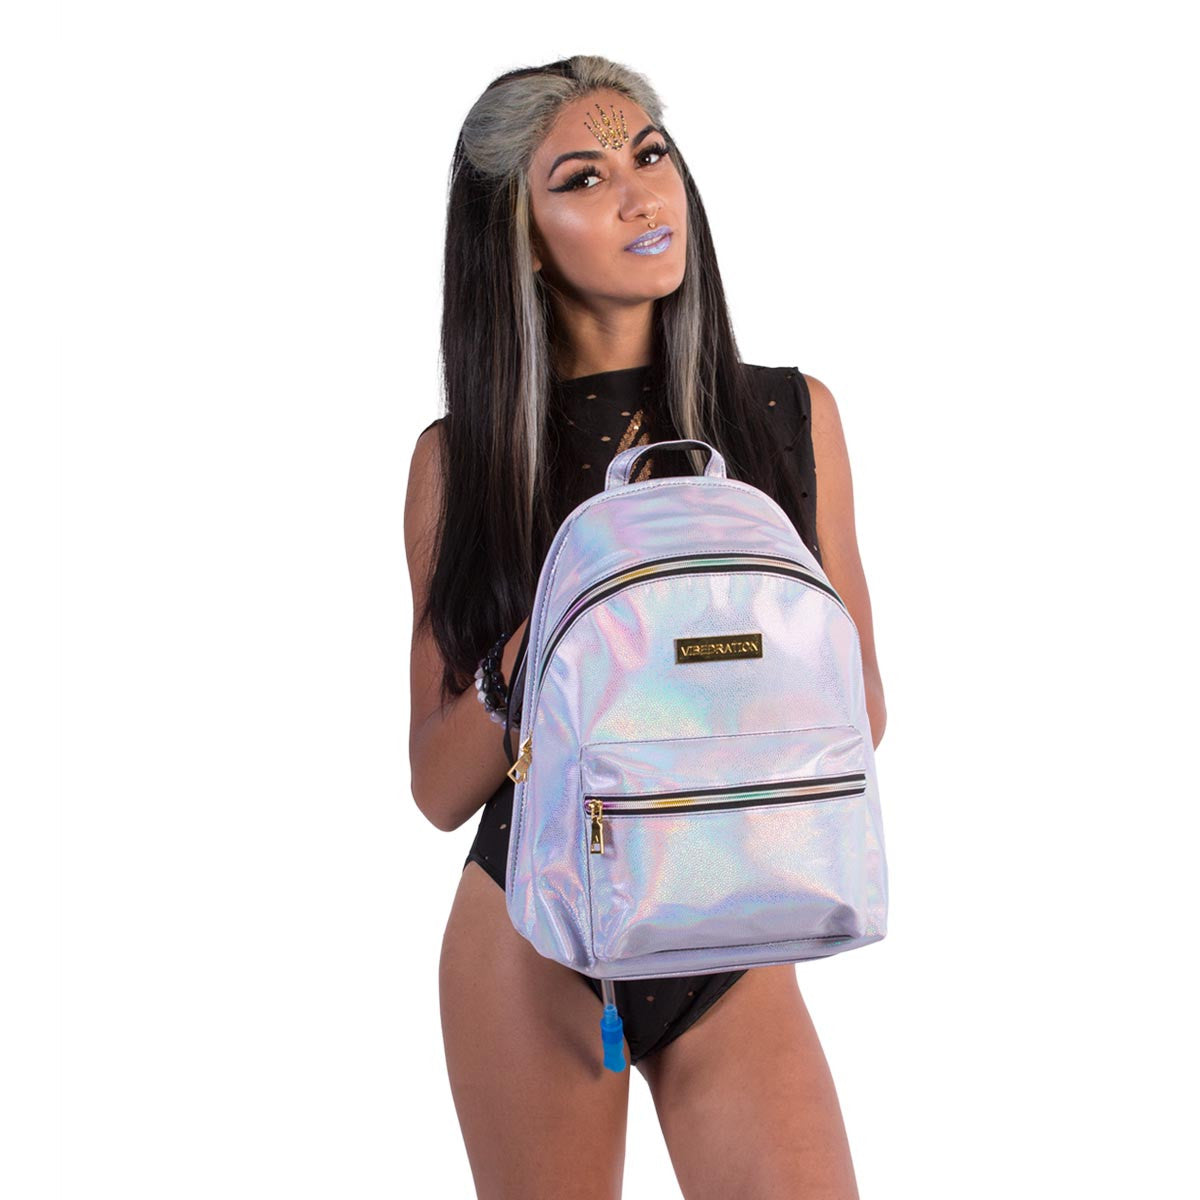 Female holding lavender leather designer hydration pack with rainbow zippers.